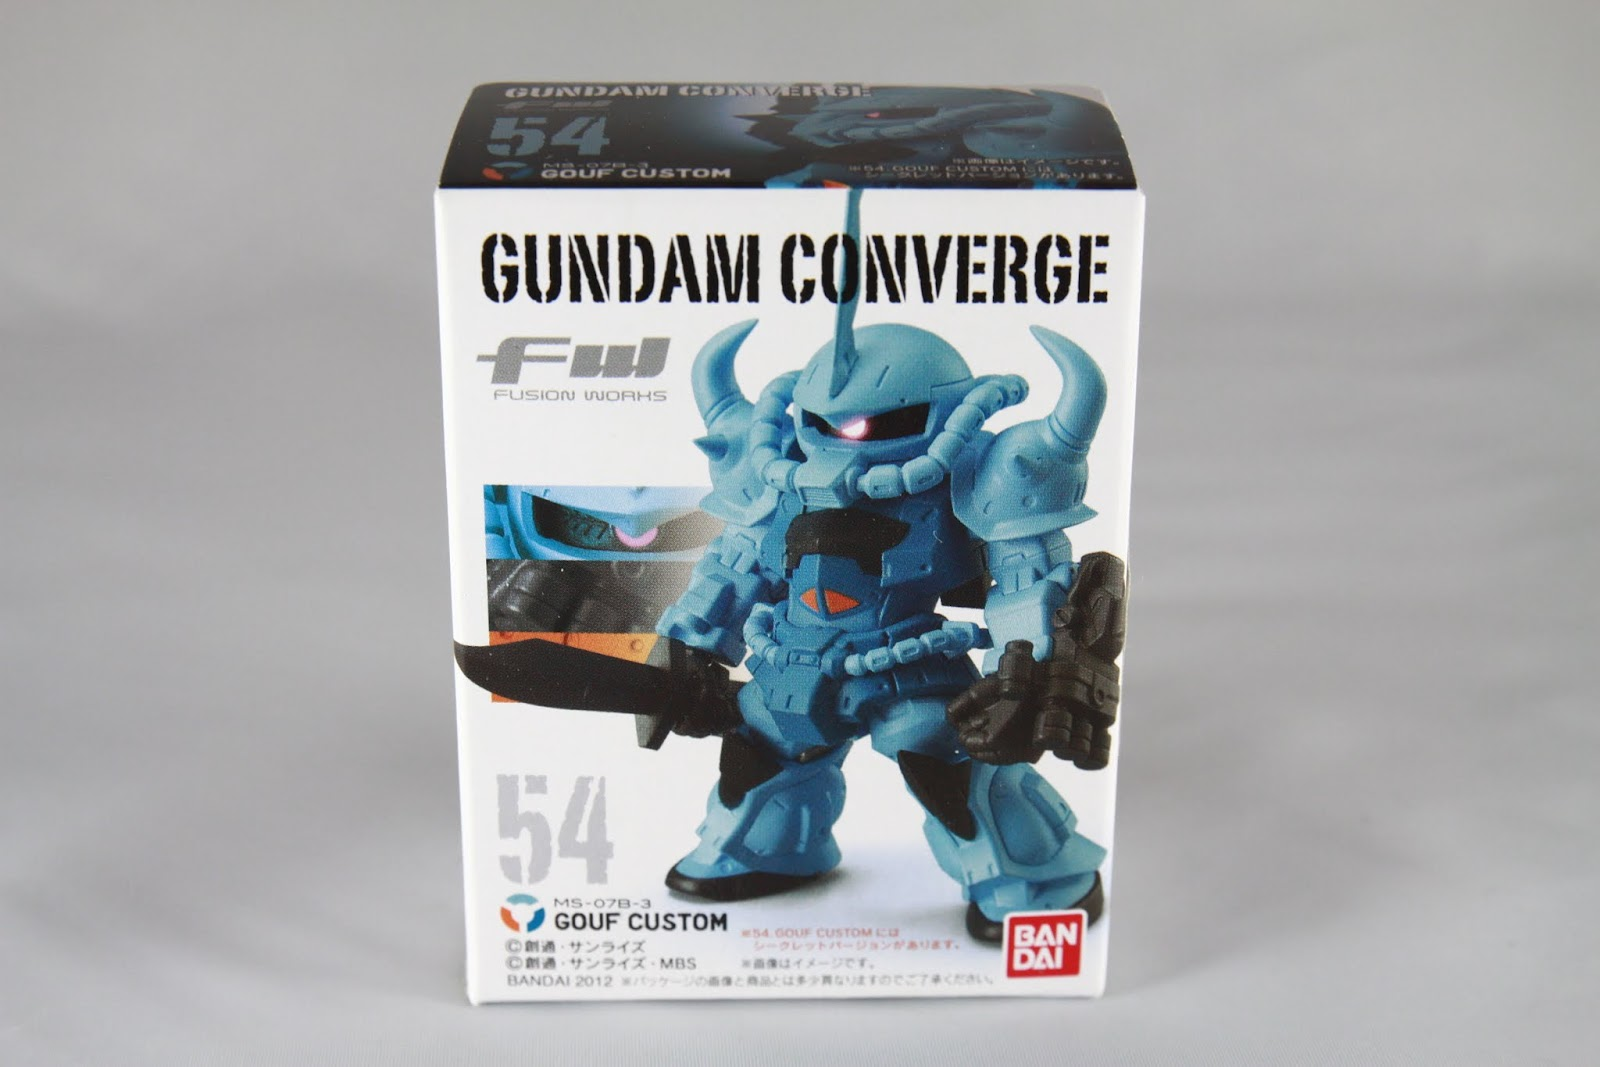 No 54 Gouf Custom